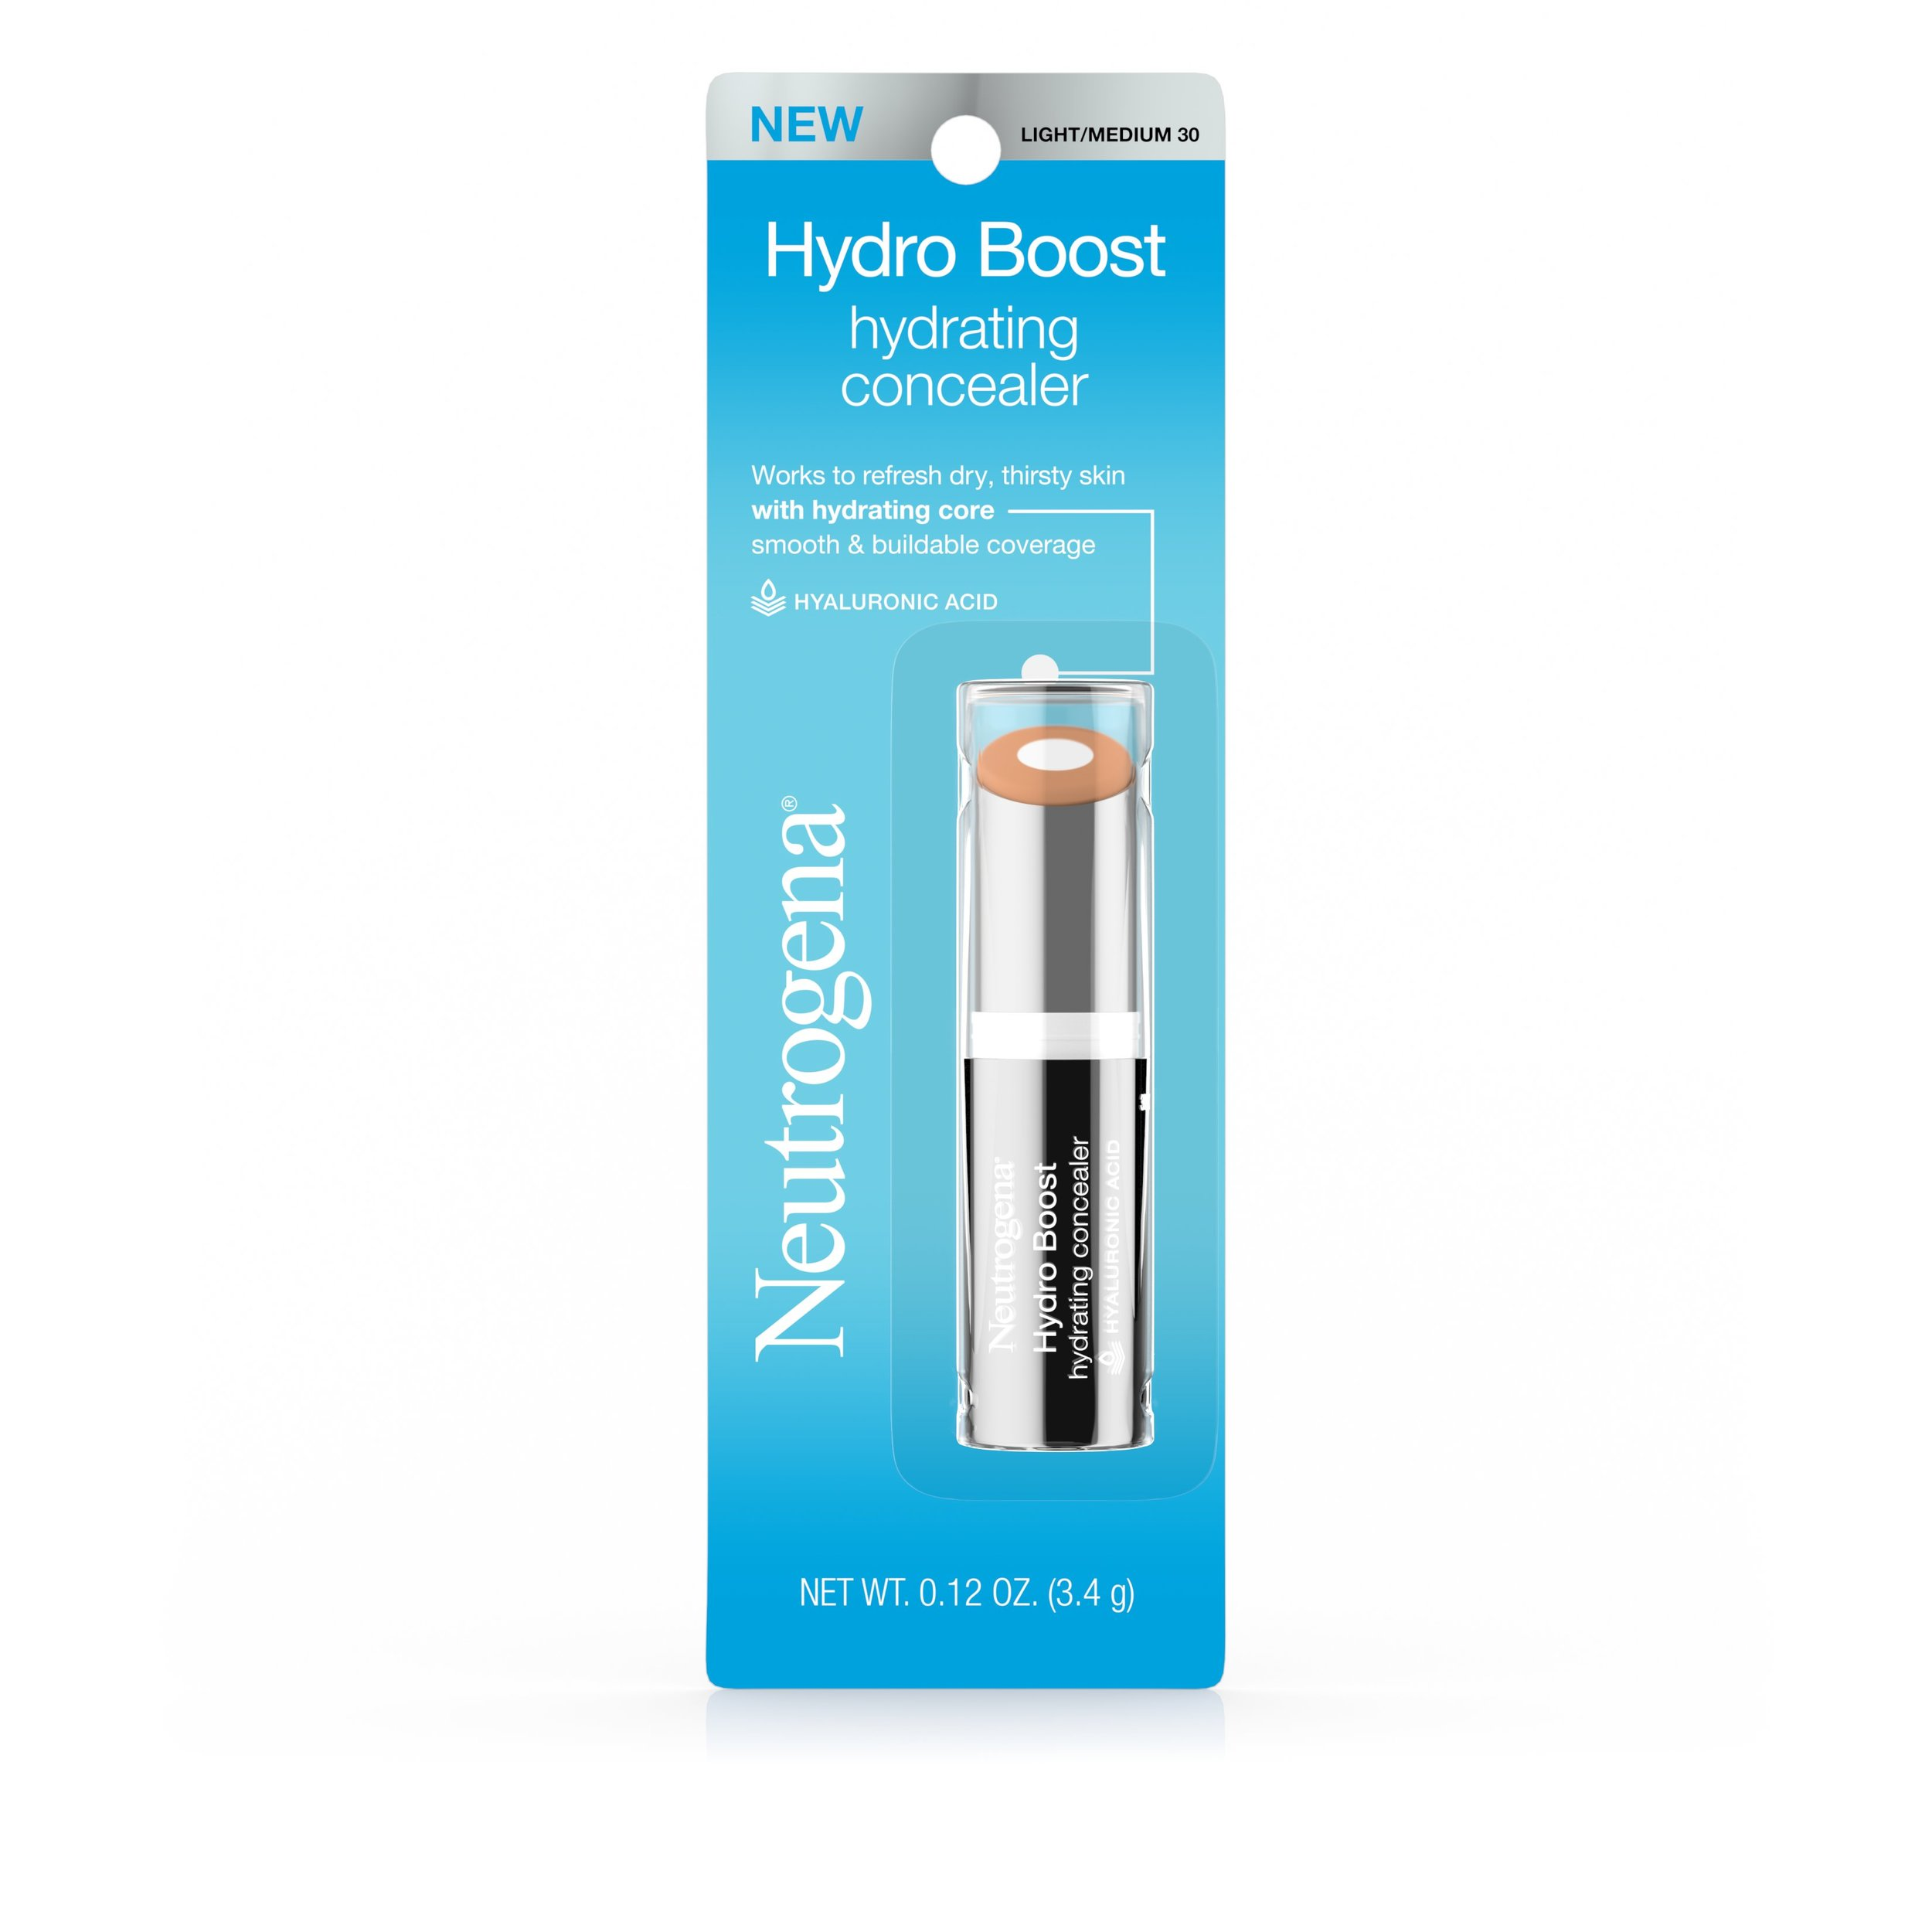 Hydro Boost Hydrating Concealer